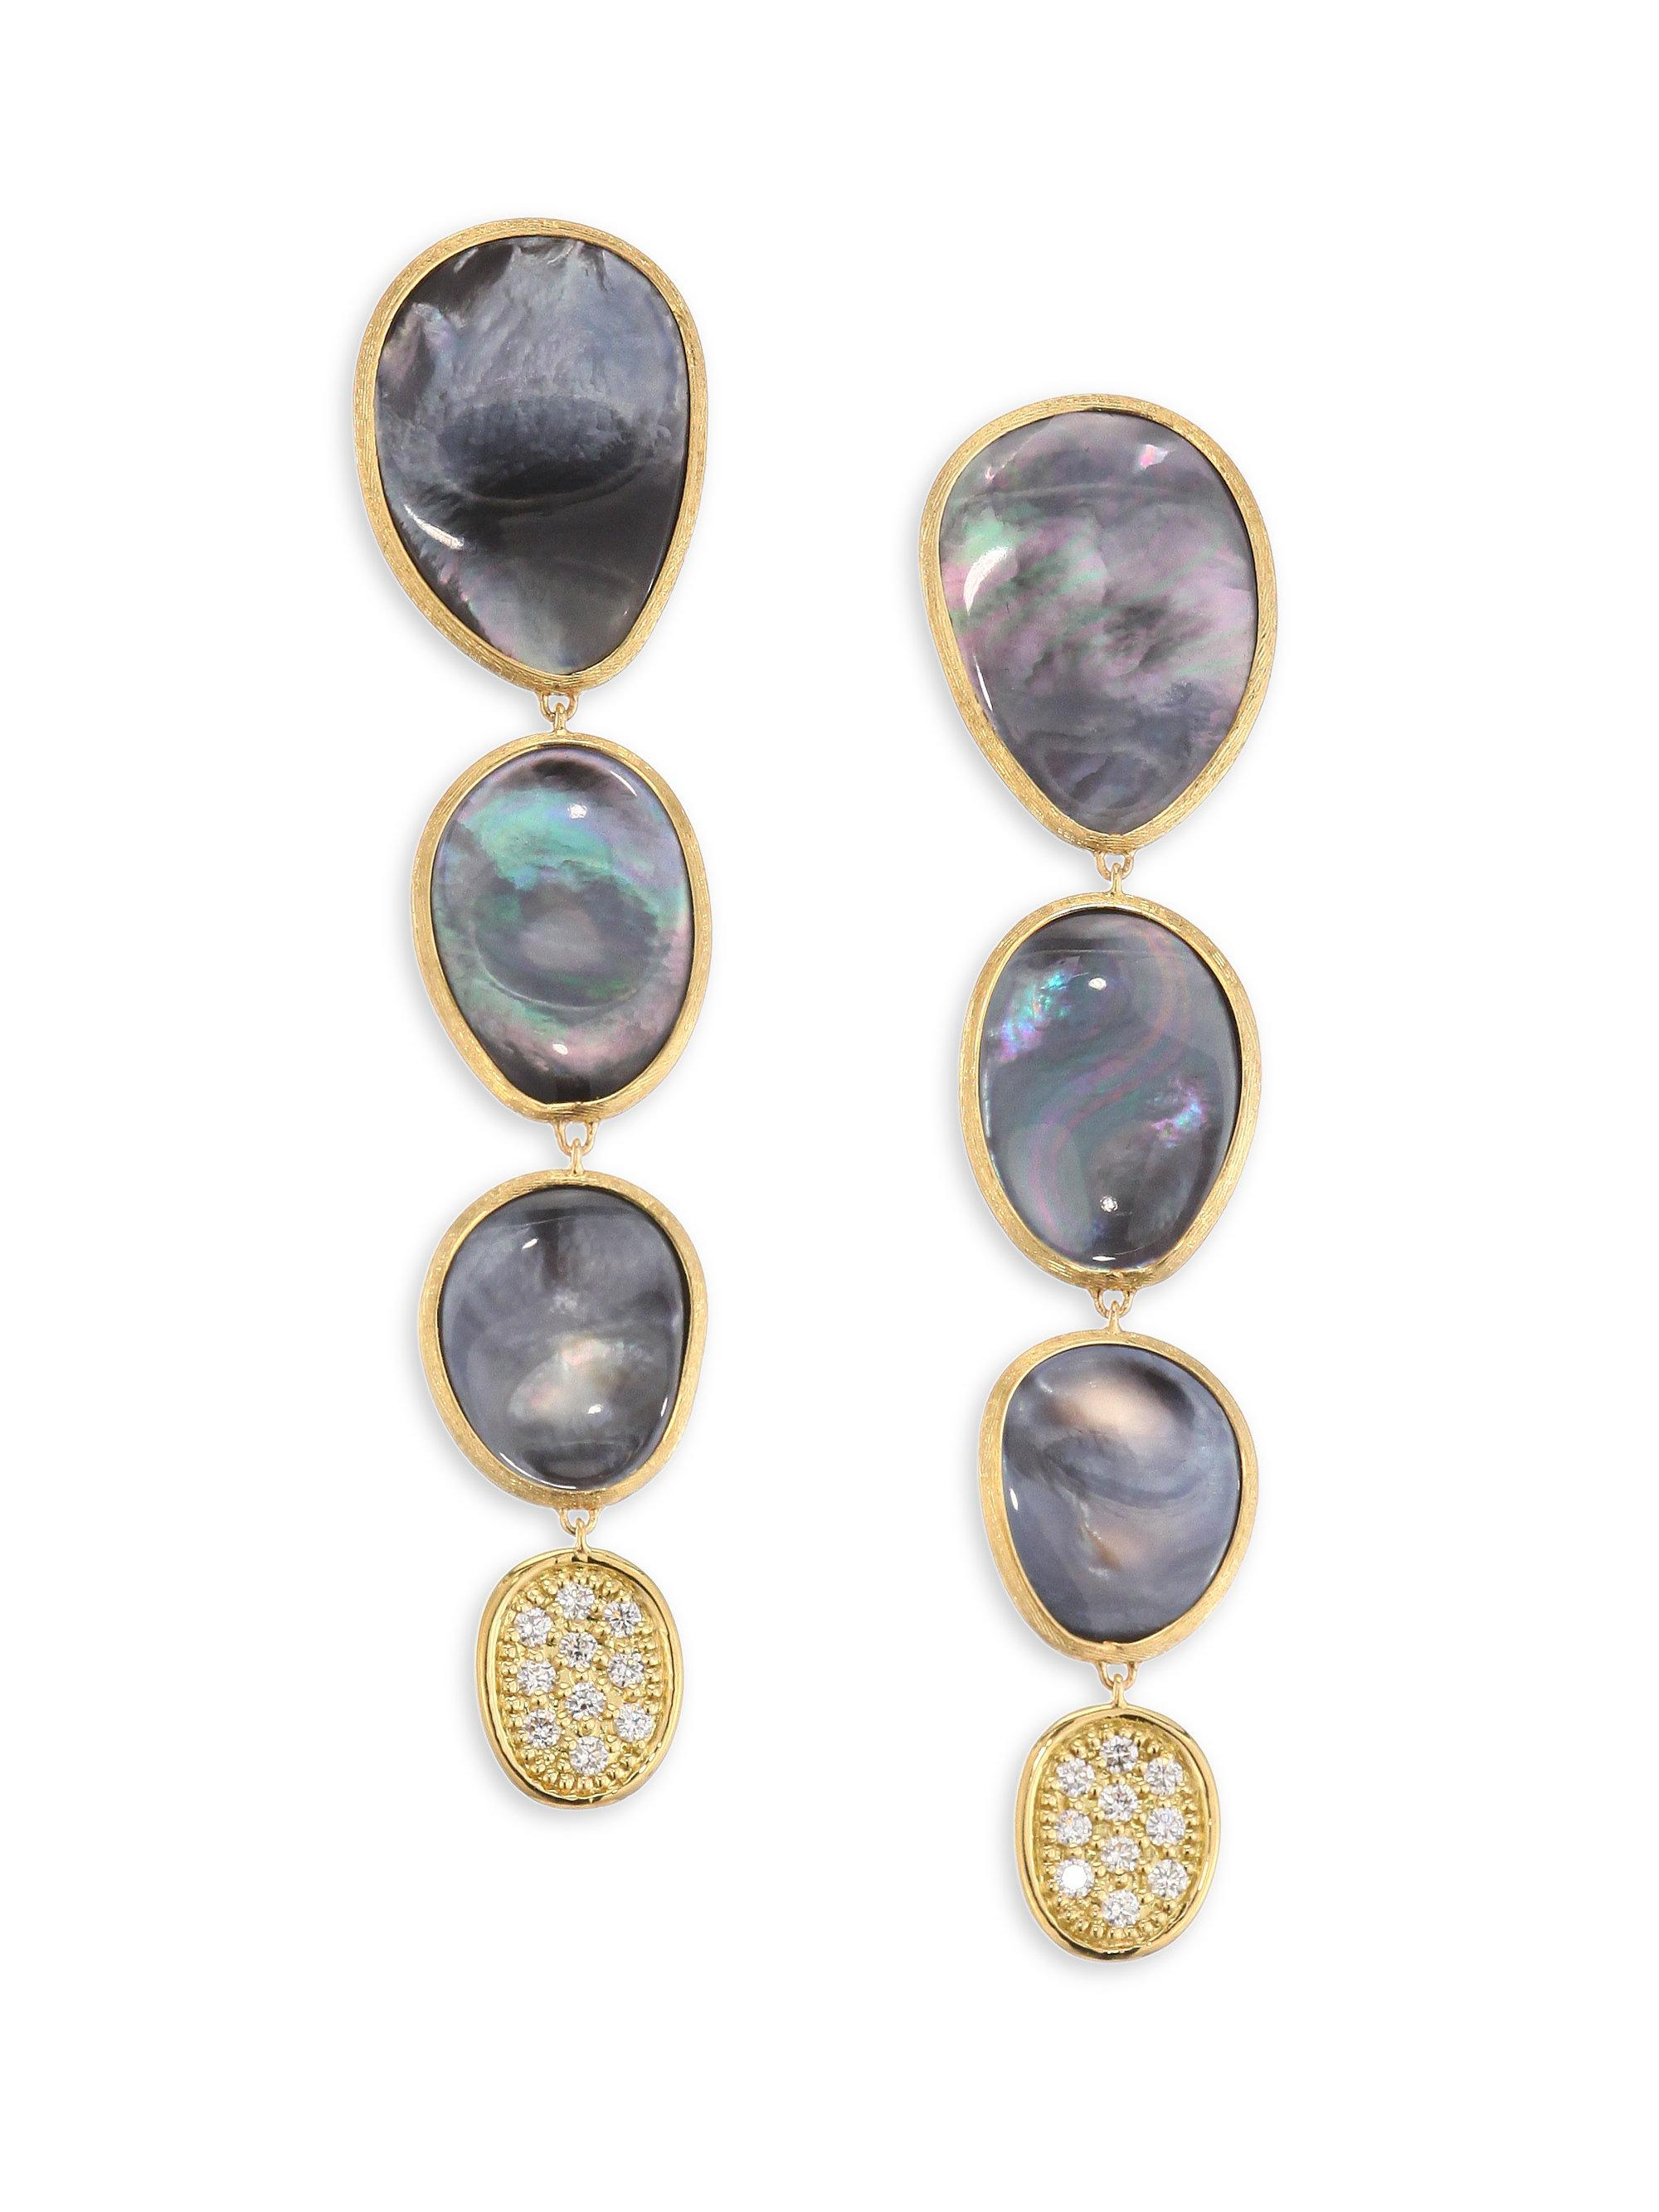 Marco Bicego Lunaria Medium Earrings with Black Mother-of-Pearl tKBAeUt